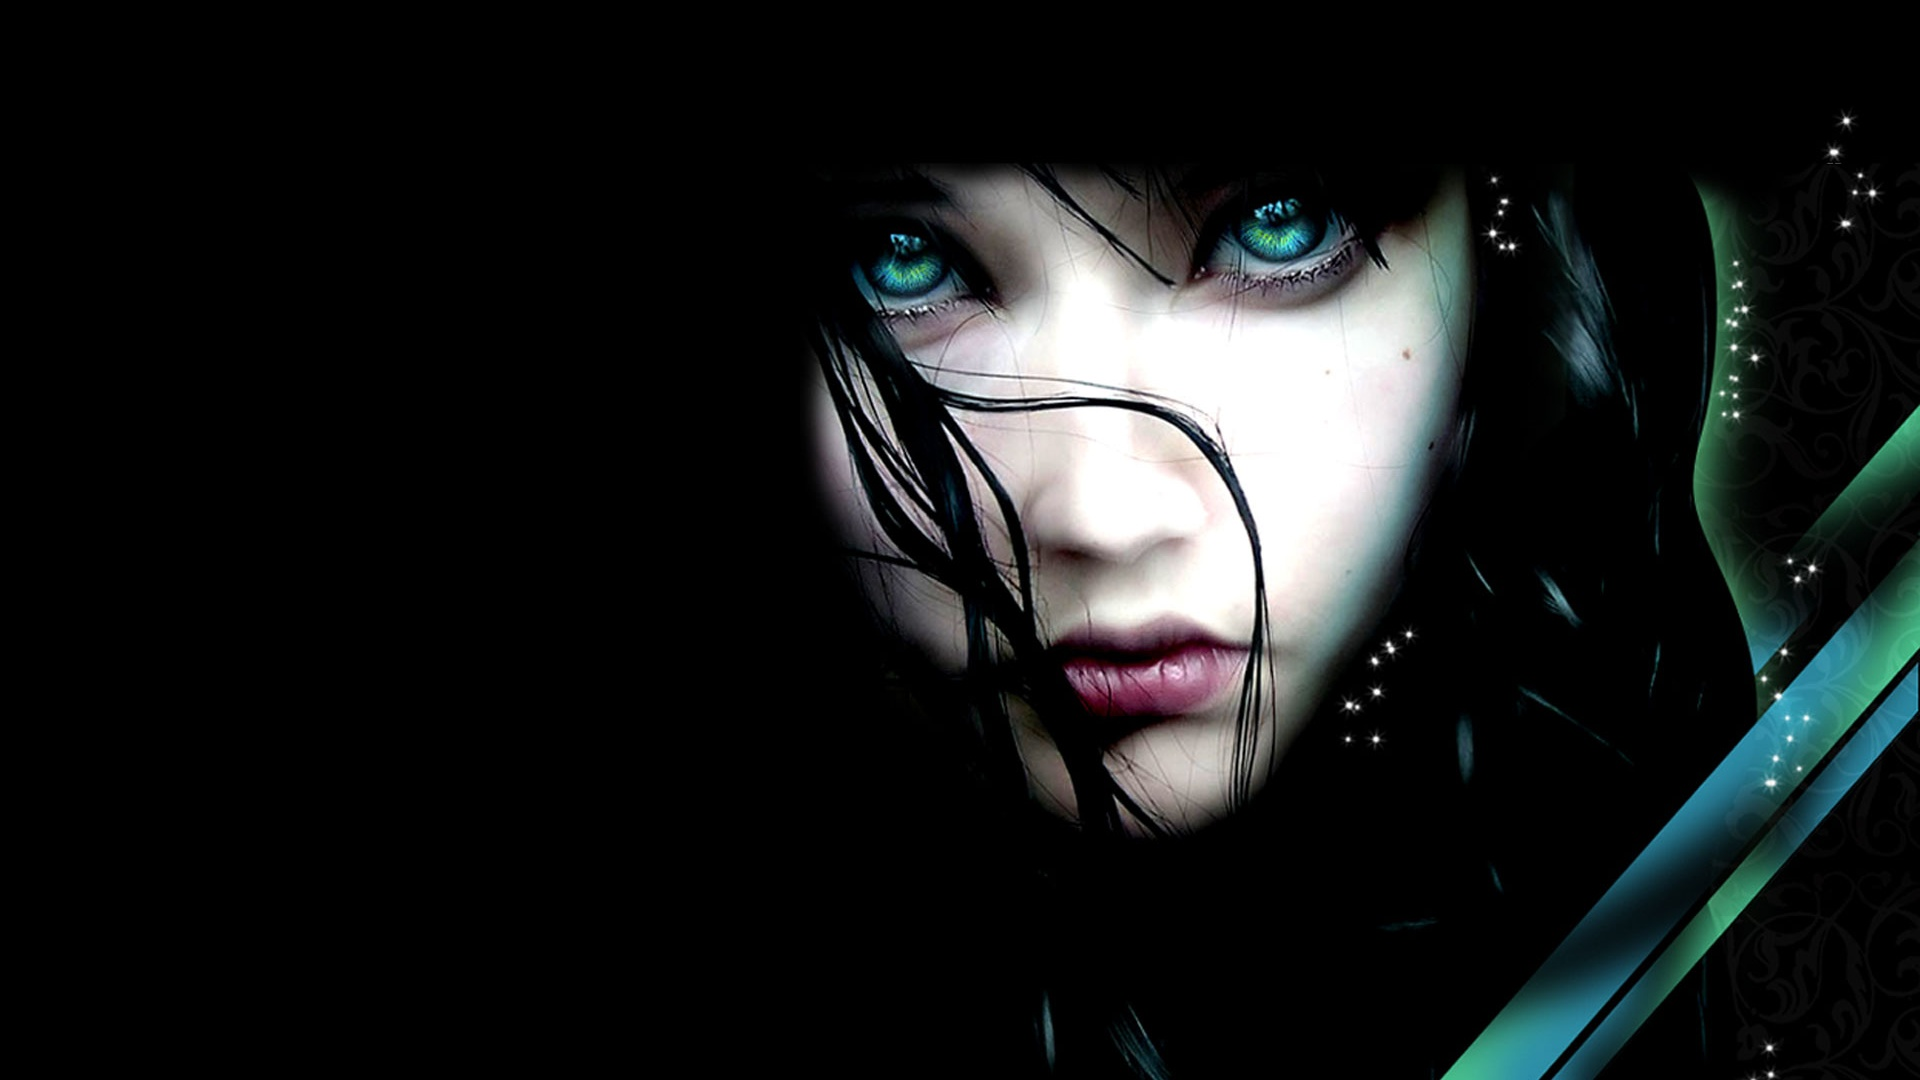 fantasy-girl-green-eyes-white-skin-dark-background-black-hair-staring-1920x1080